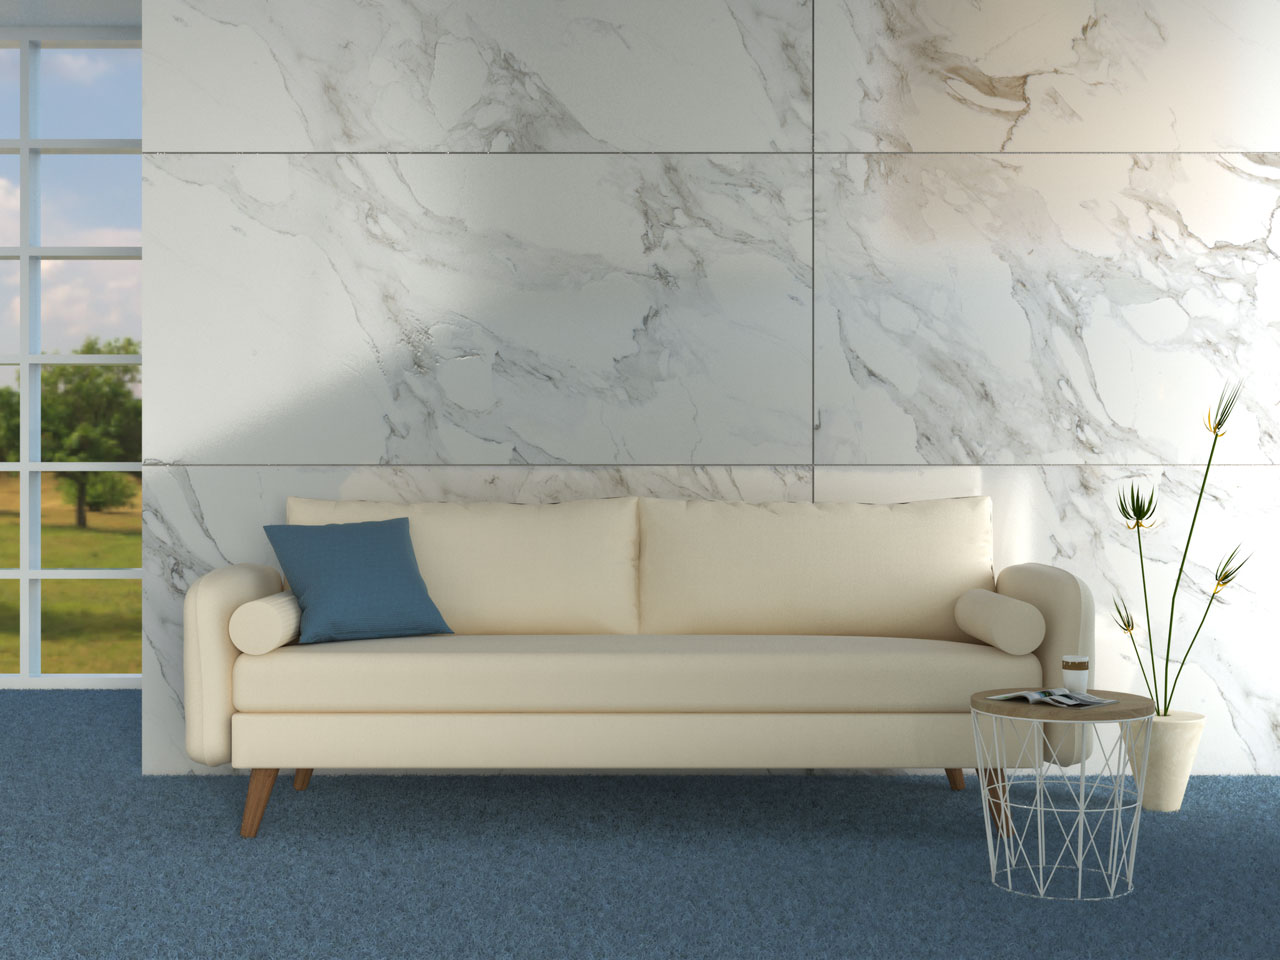 Cream couch with blue flooring